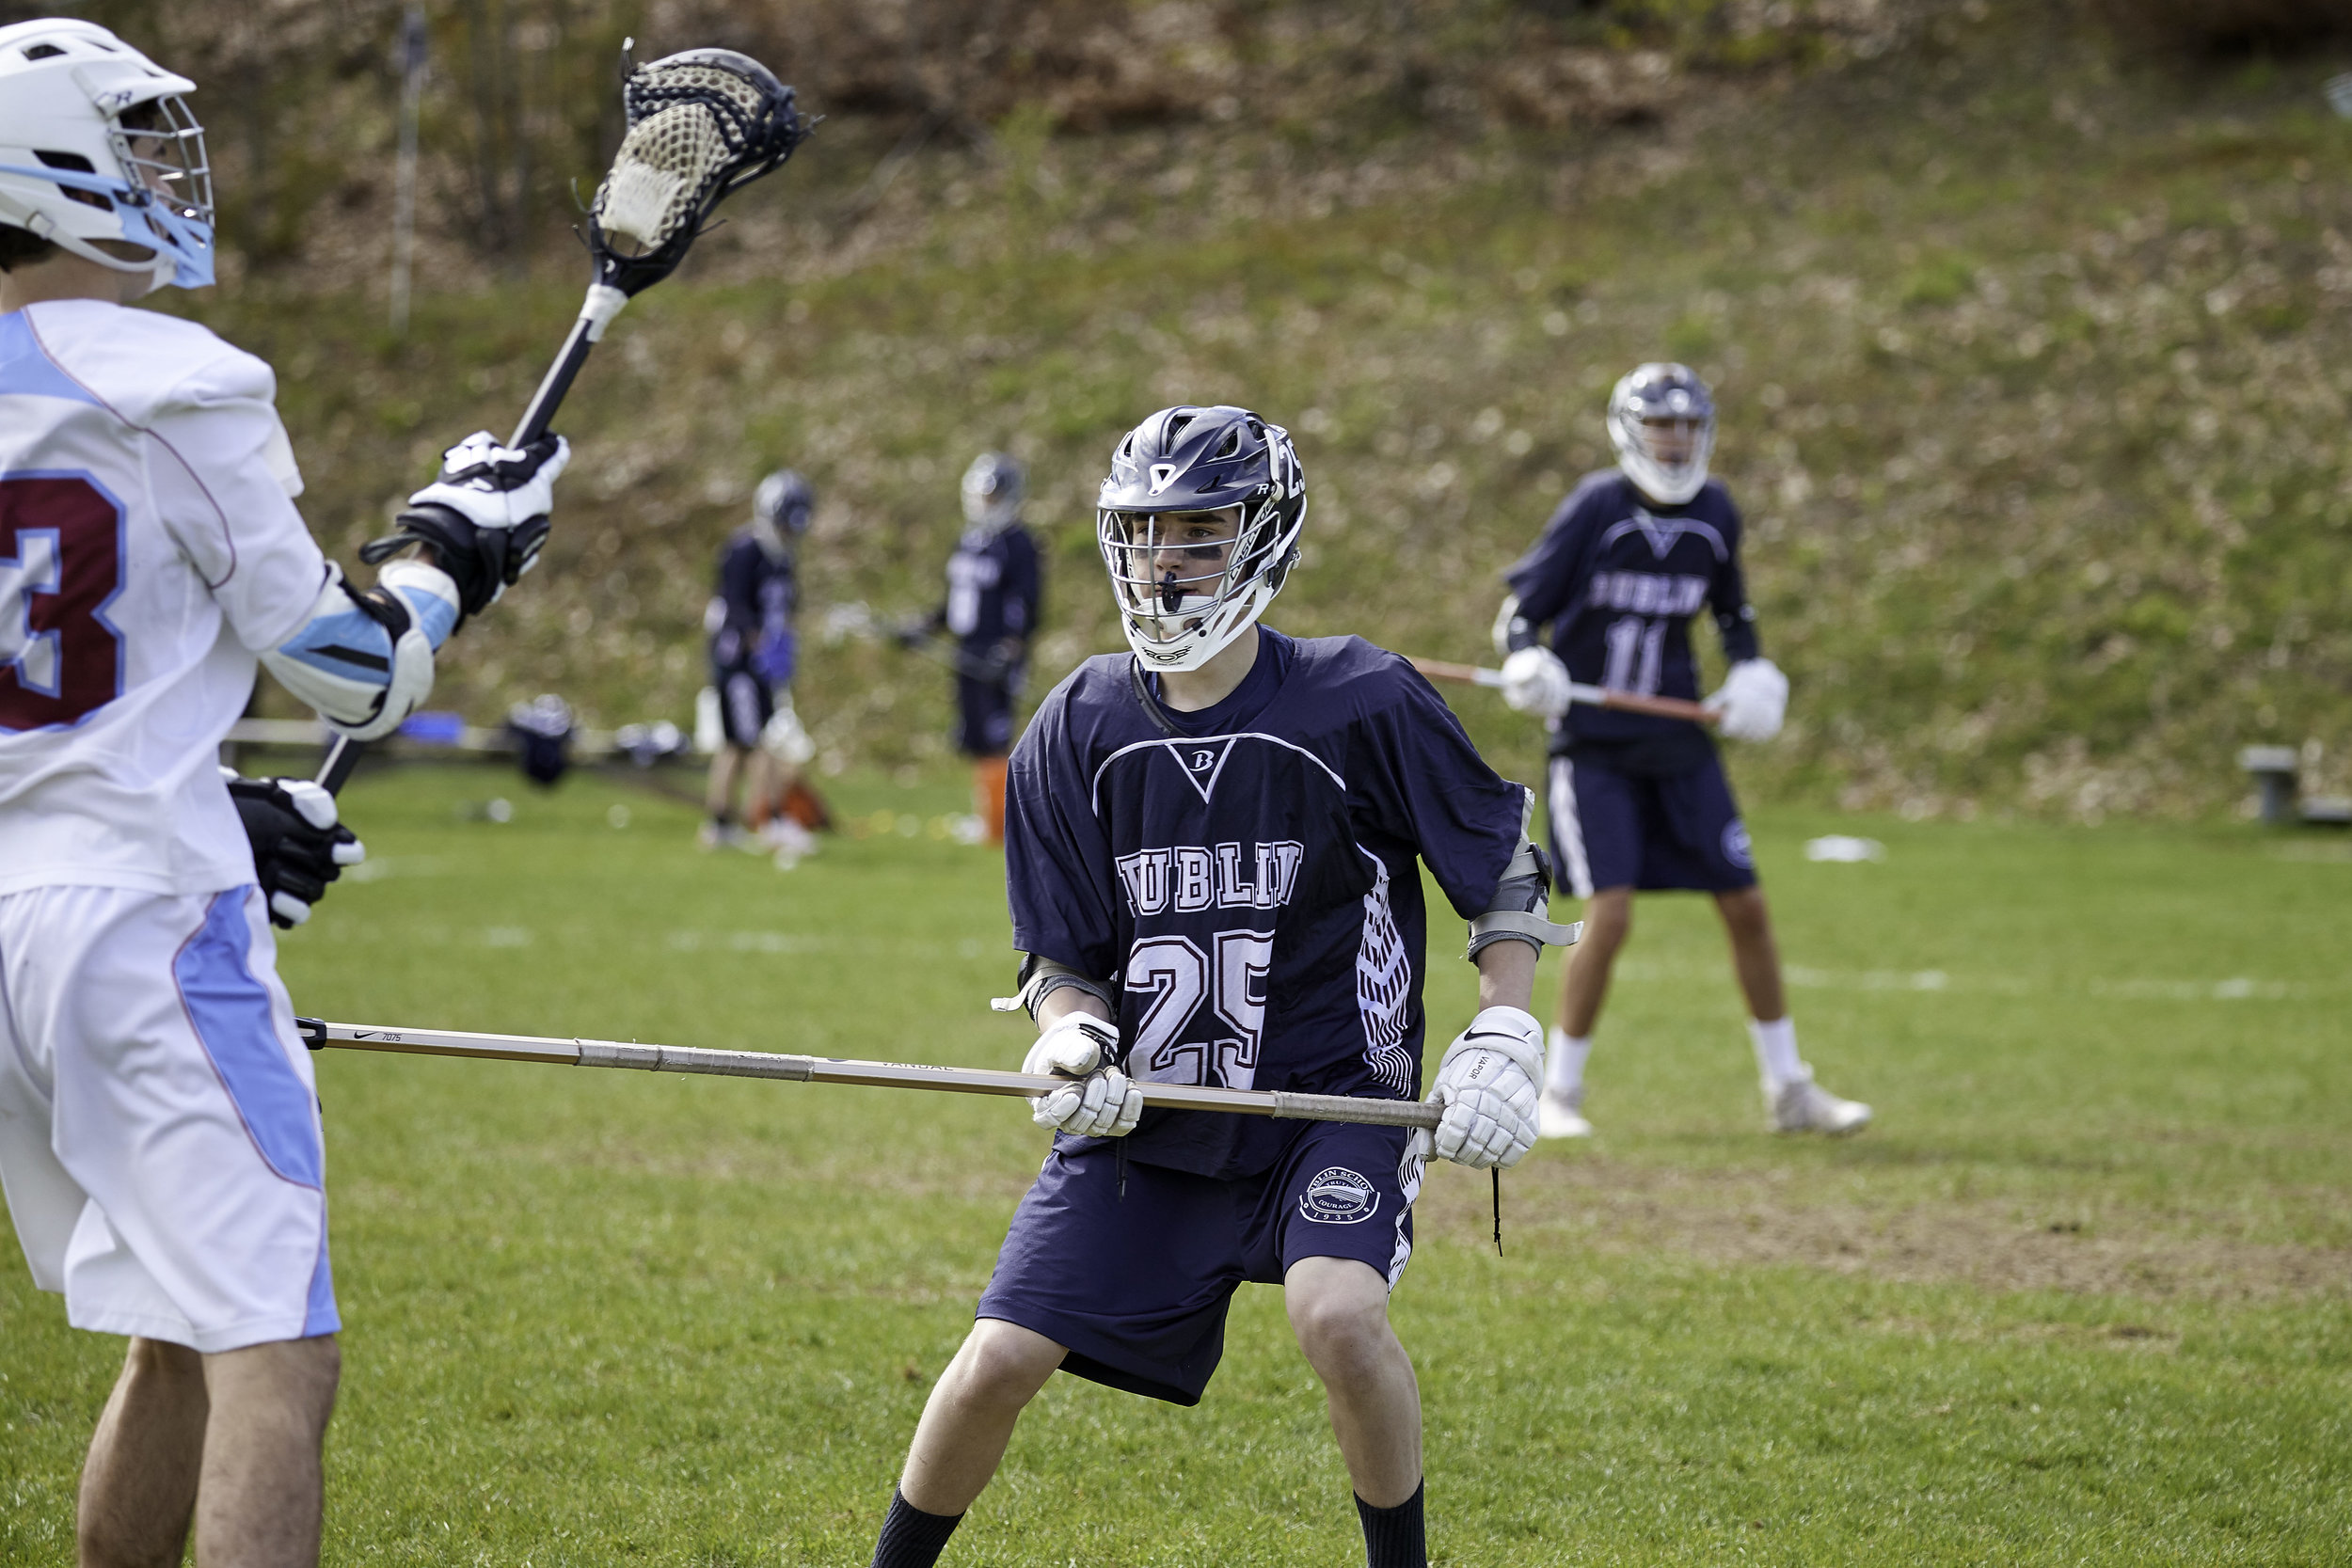 Boys Lax vs Northfield Mount Hermon JV - May 15 2019 - 0021.jpg